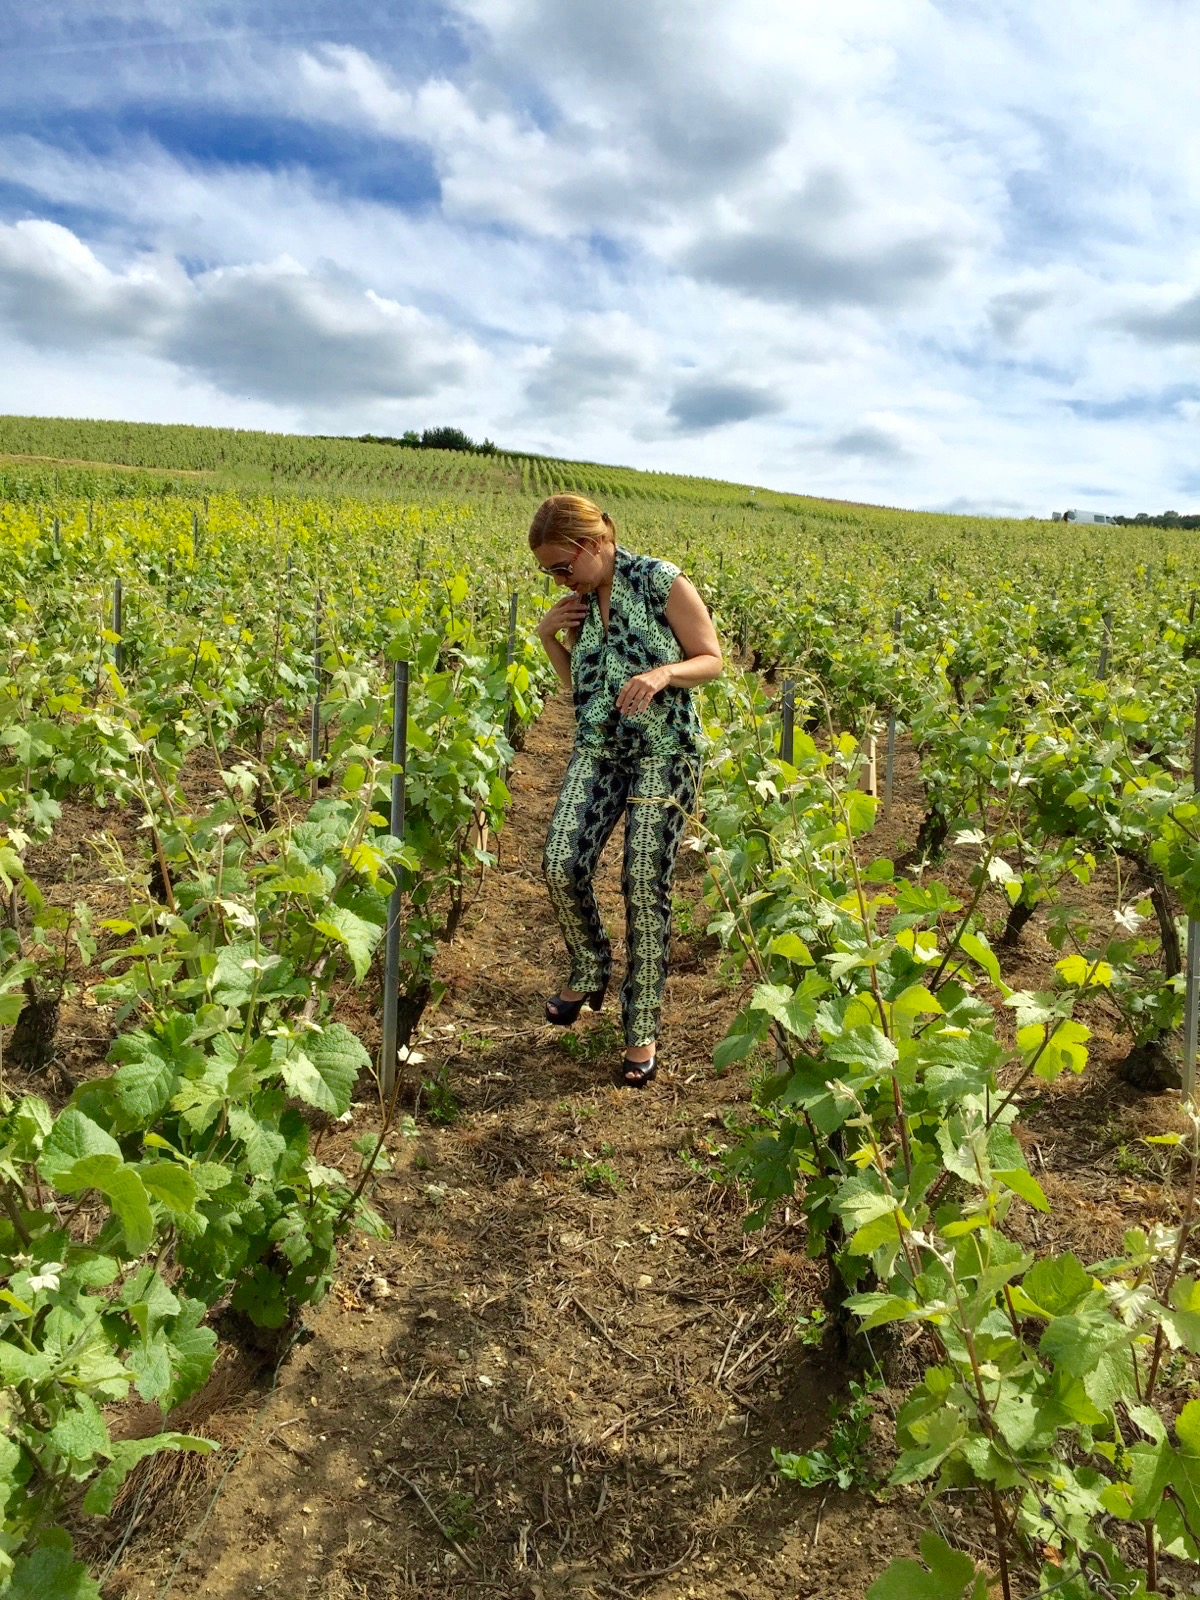 Larissa at the Épernay Vineyards in France, where the Moët & Chandon champagne is made.